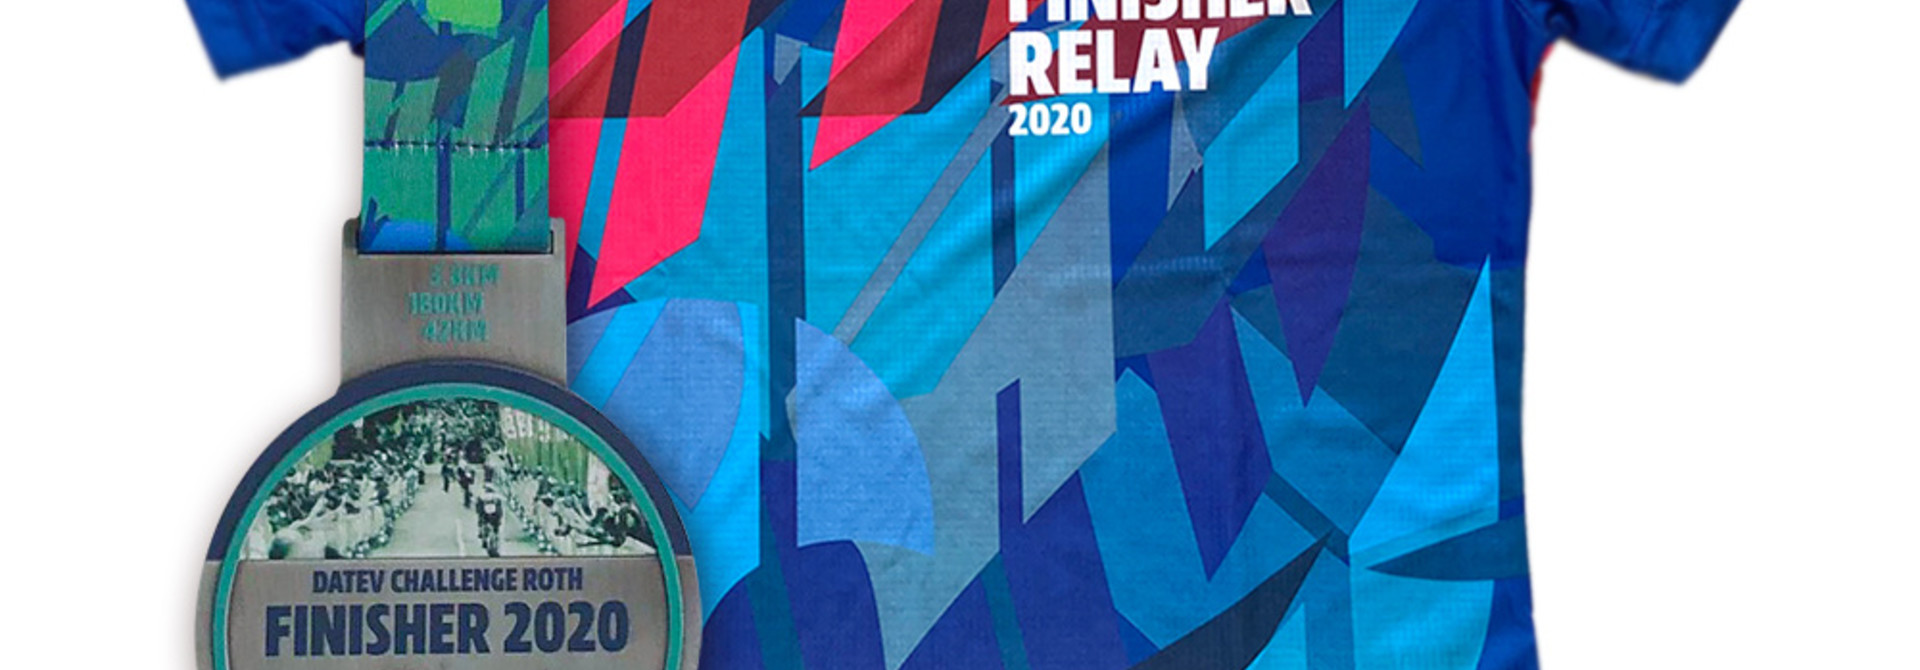 2020 Finisher Package Relay Women